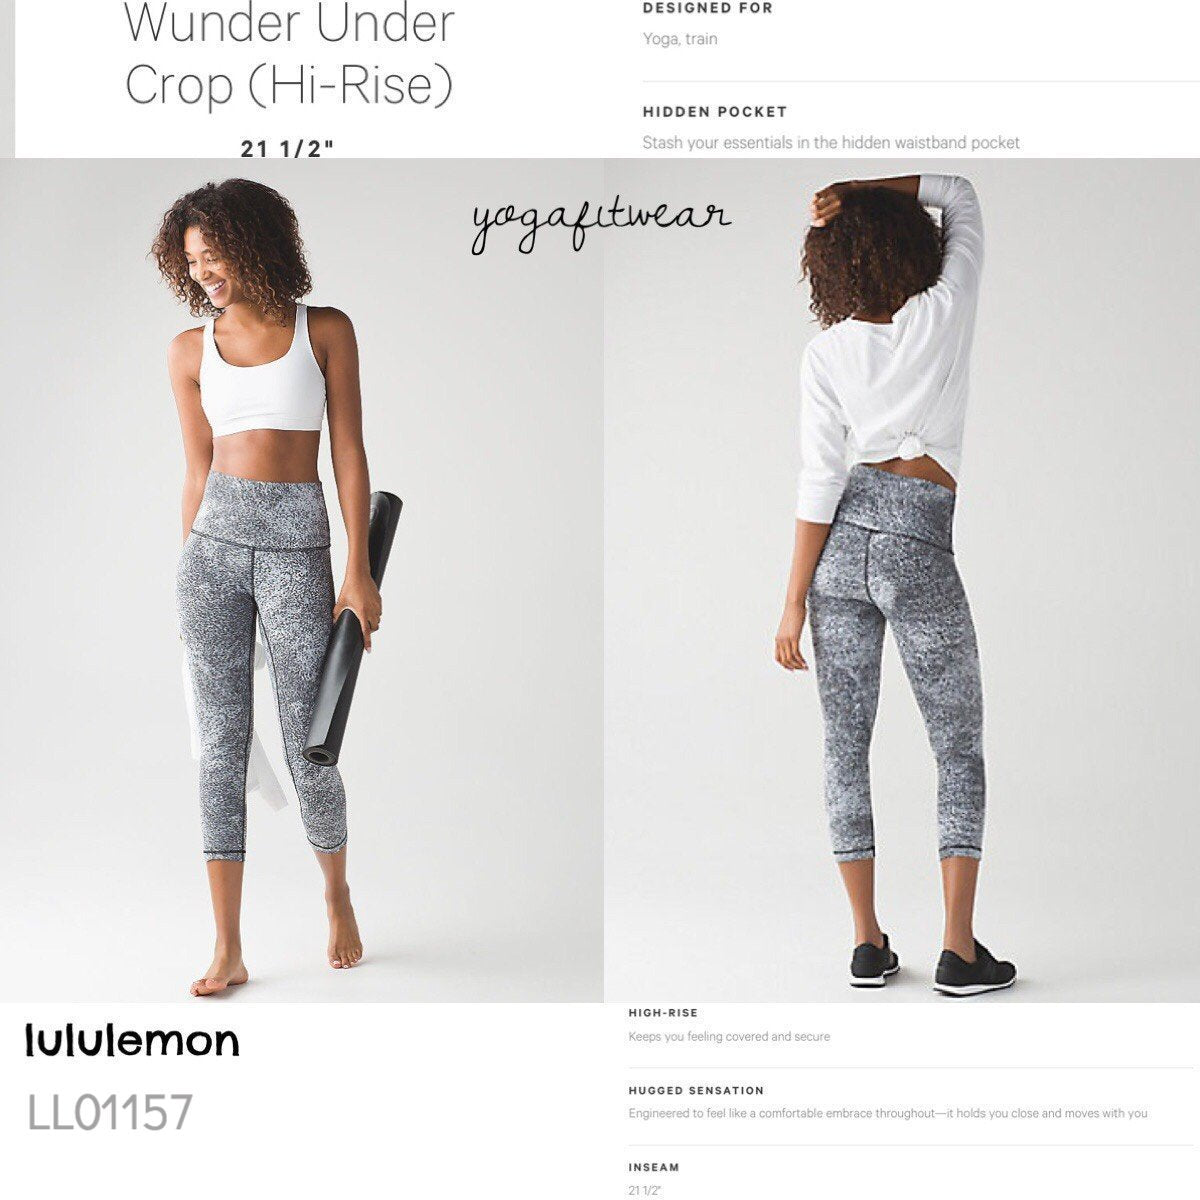 Lululemon - Wunder Under Crop (Hi-rise) 21 1/2